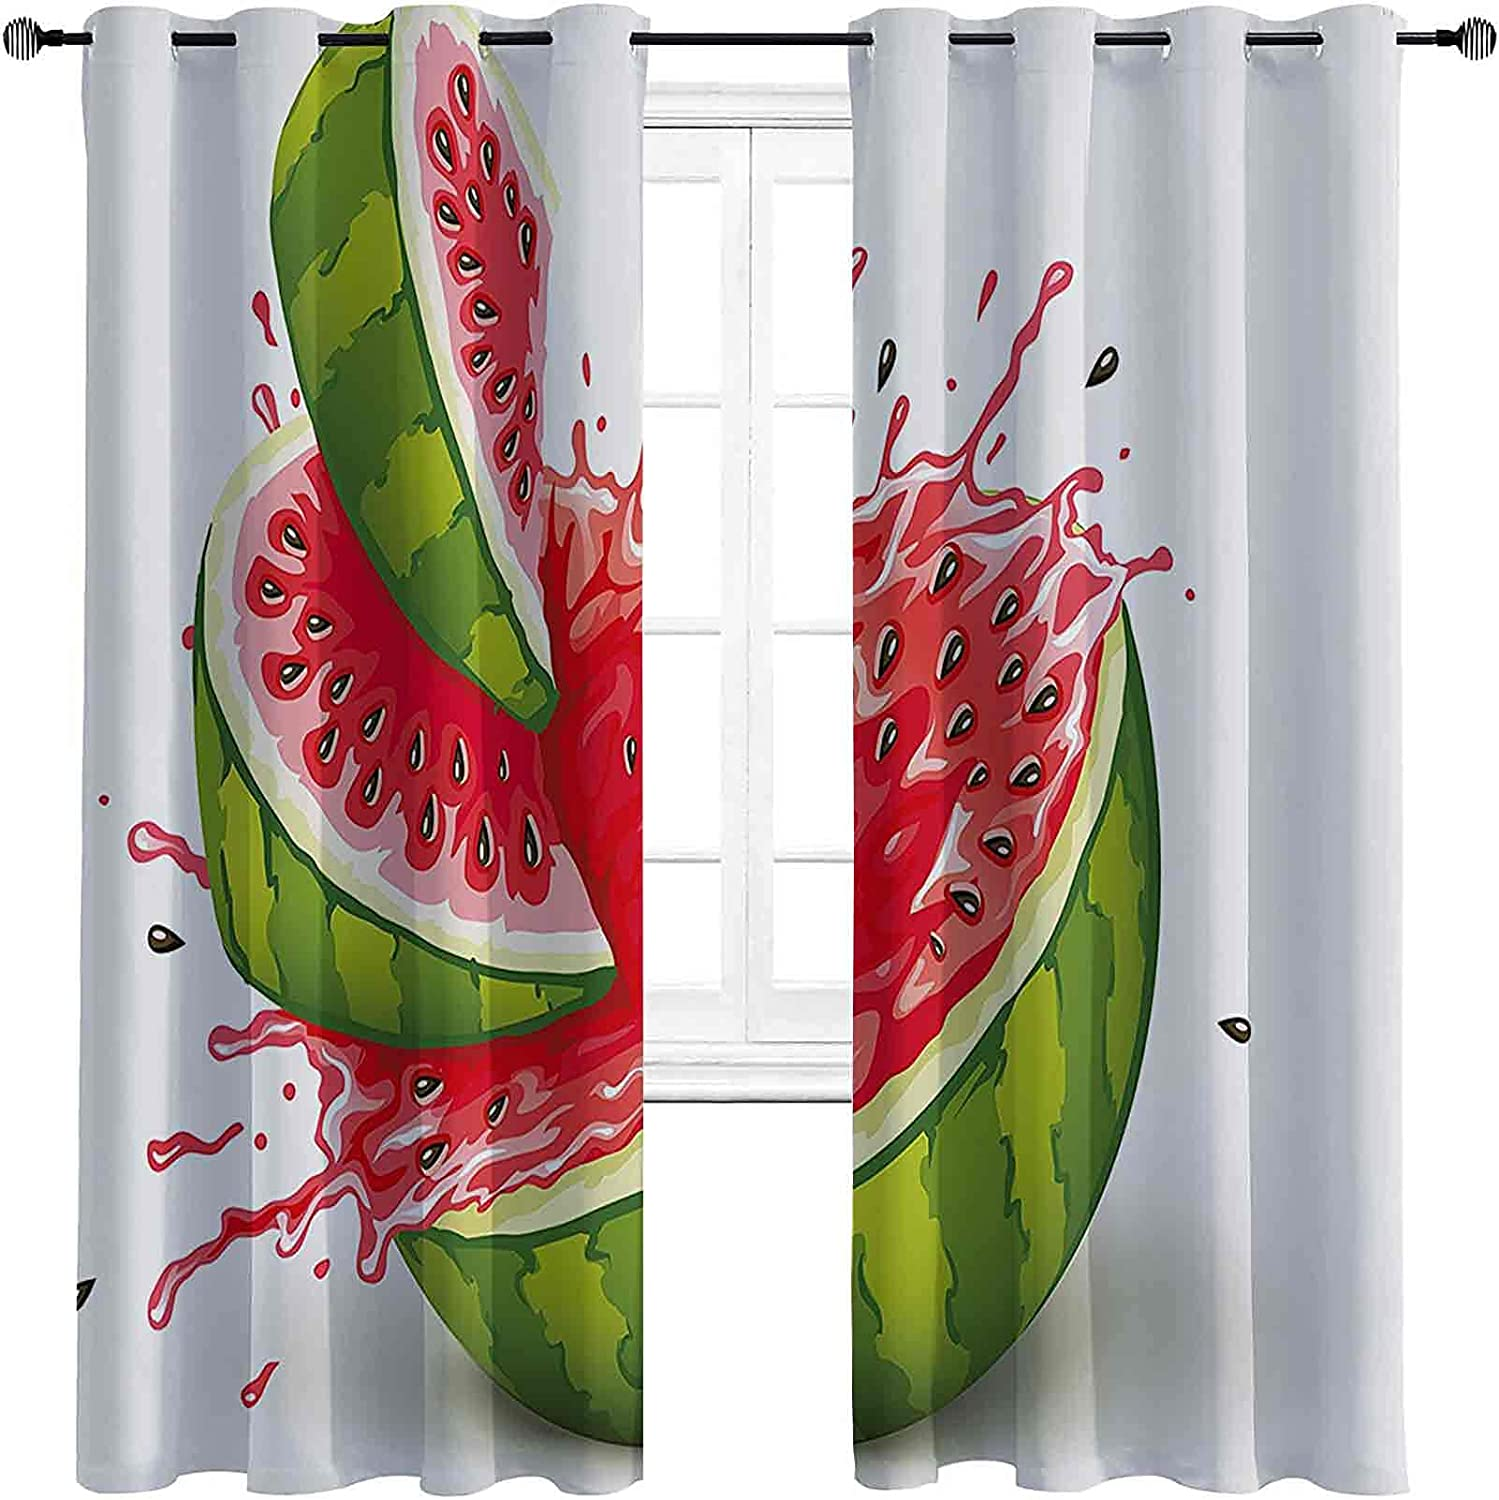 Modern Max 63% OFF Decor 90%-99% Blackout Lining Curtain Ripe Waterme Max 57% OFF Fruit